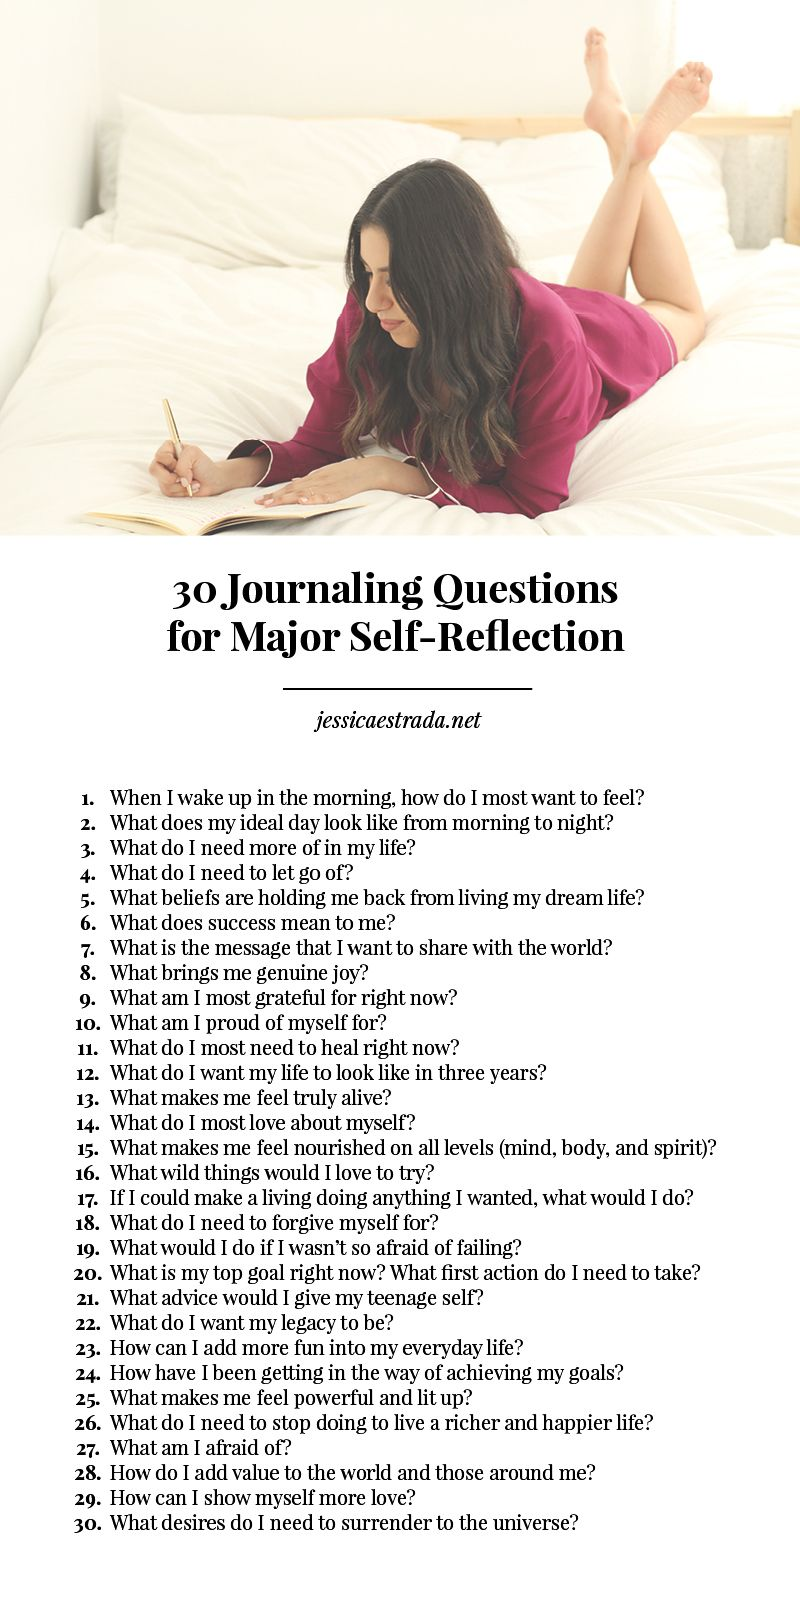 ... grow, expand, get to know yourself on a deeper level, and manifest your  biggest dreams? Try these 30 journaling questions for major self-reflection.